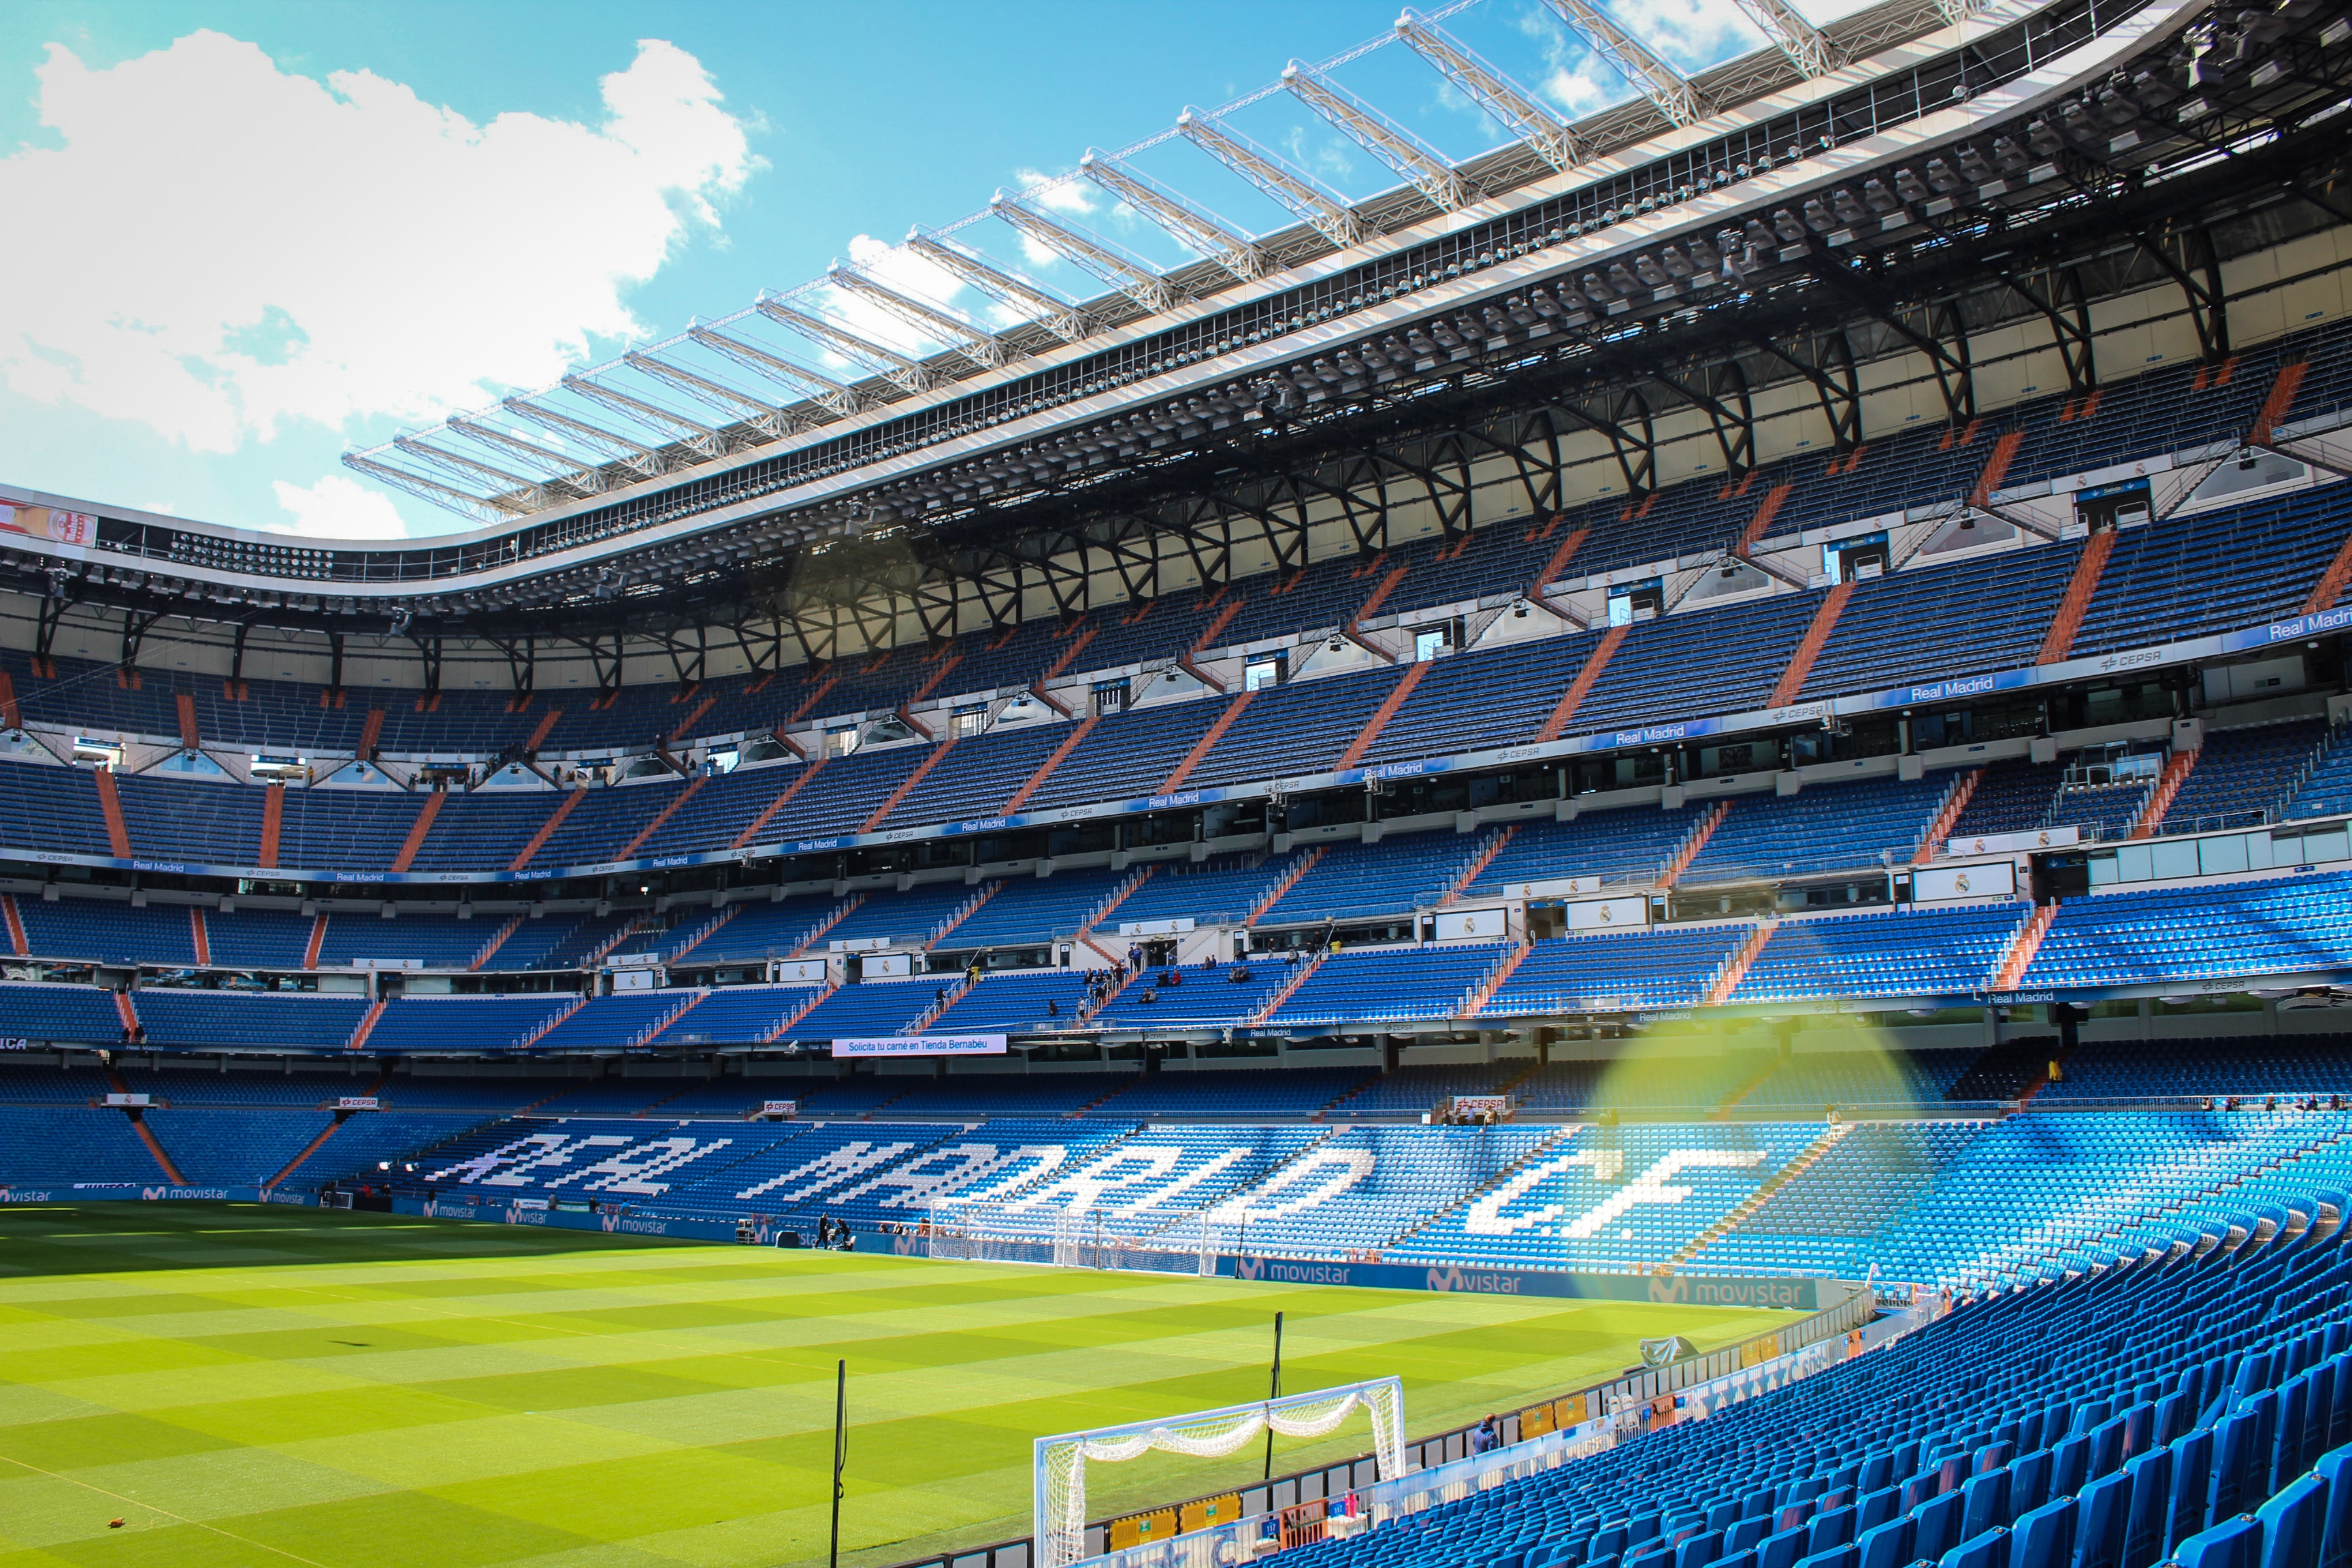 Real Madrid CF stadium